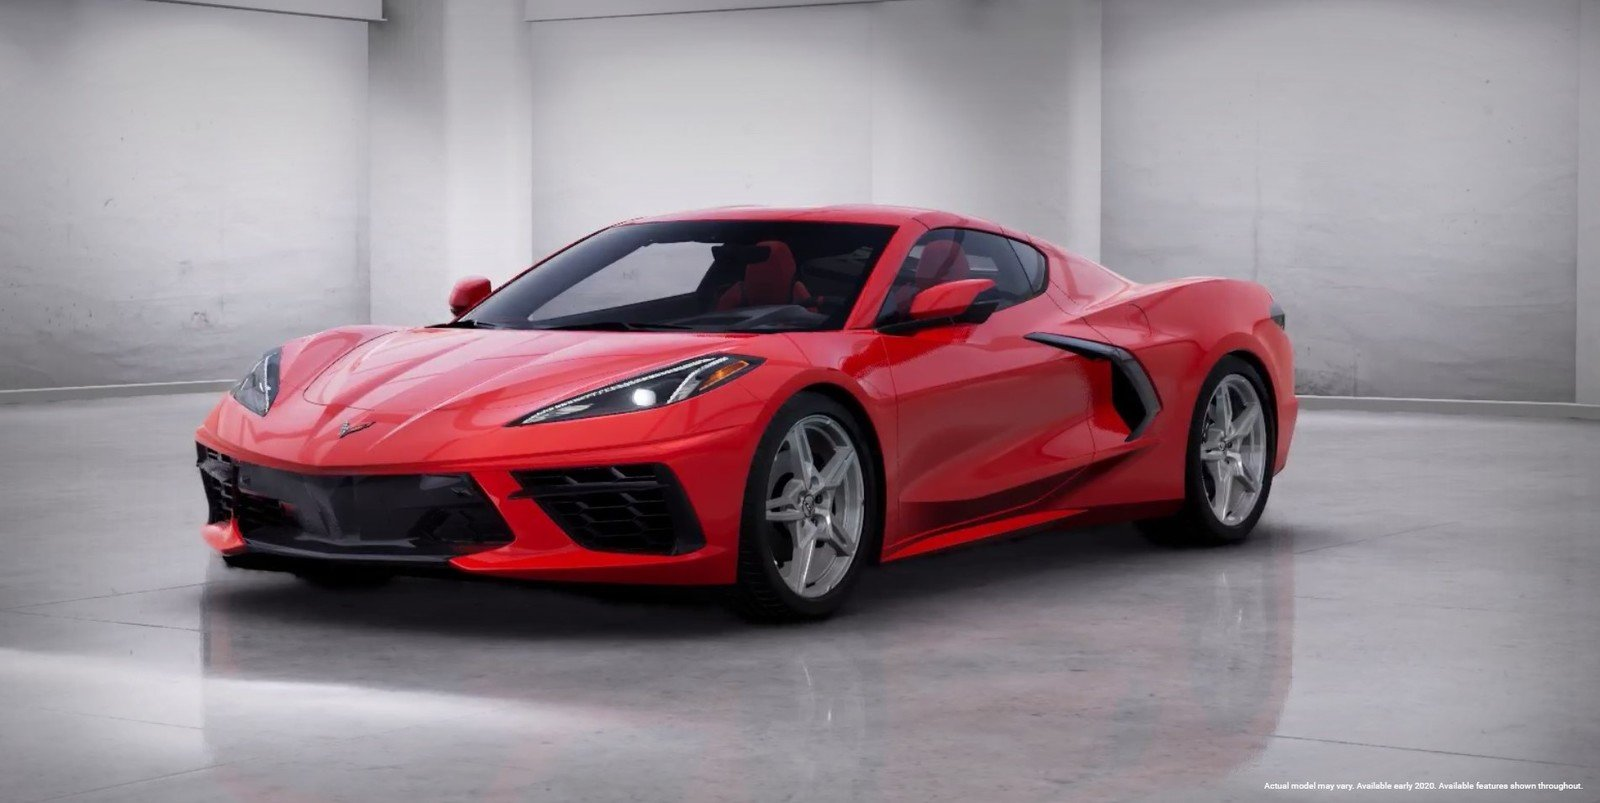 Chevrolet S Online Configurator For The 2020 Corvette C8 Stingray Is An Exercise In Patience